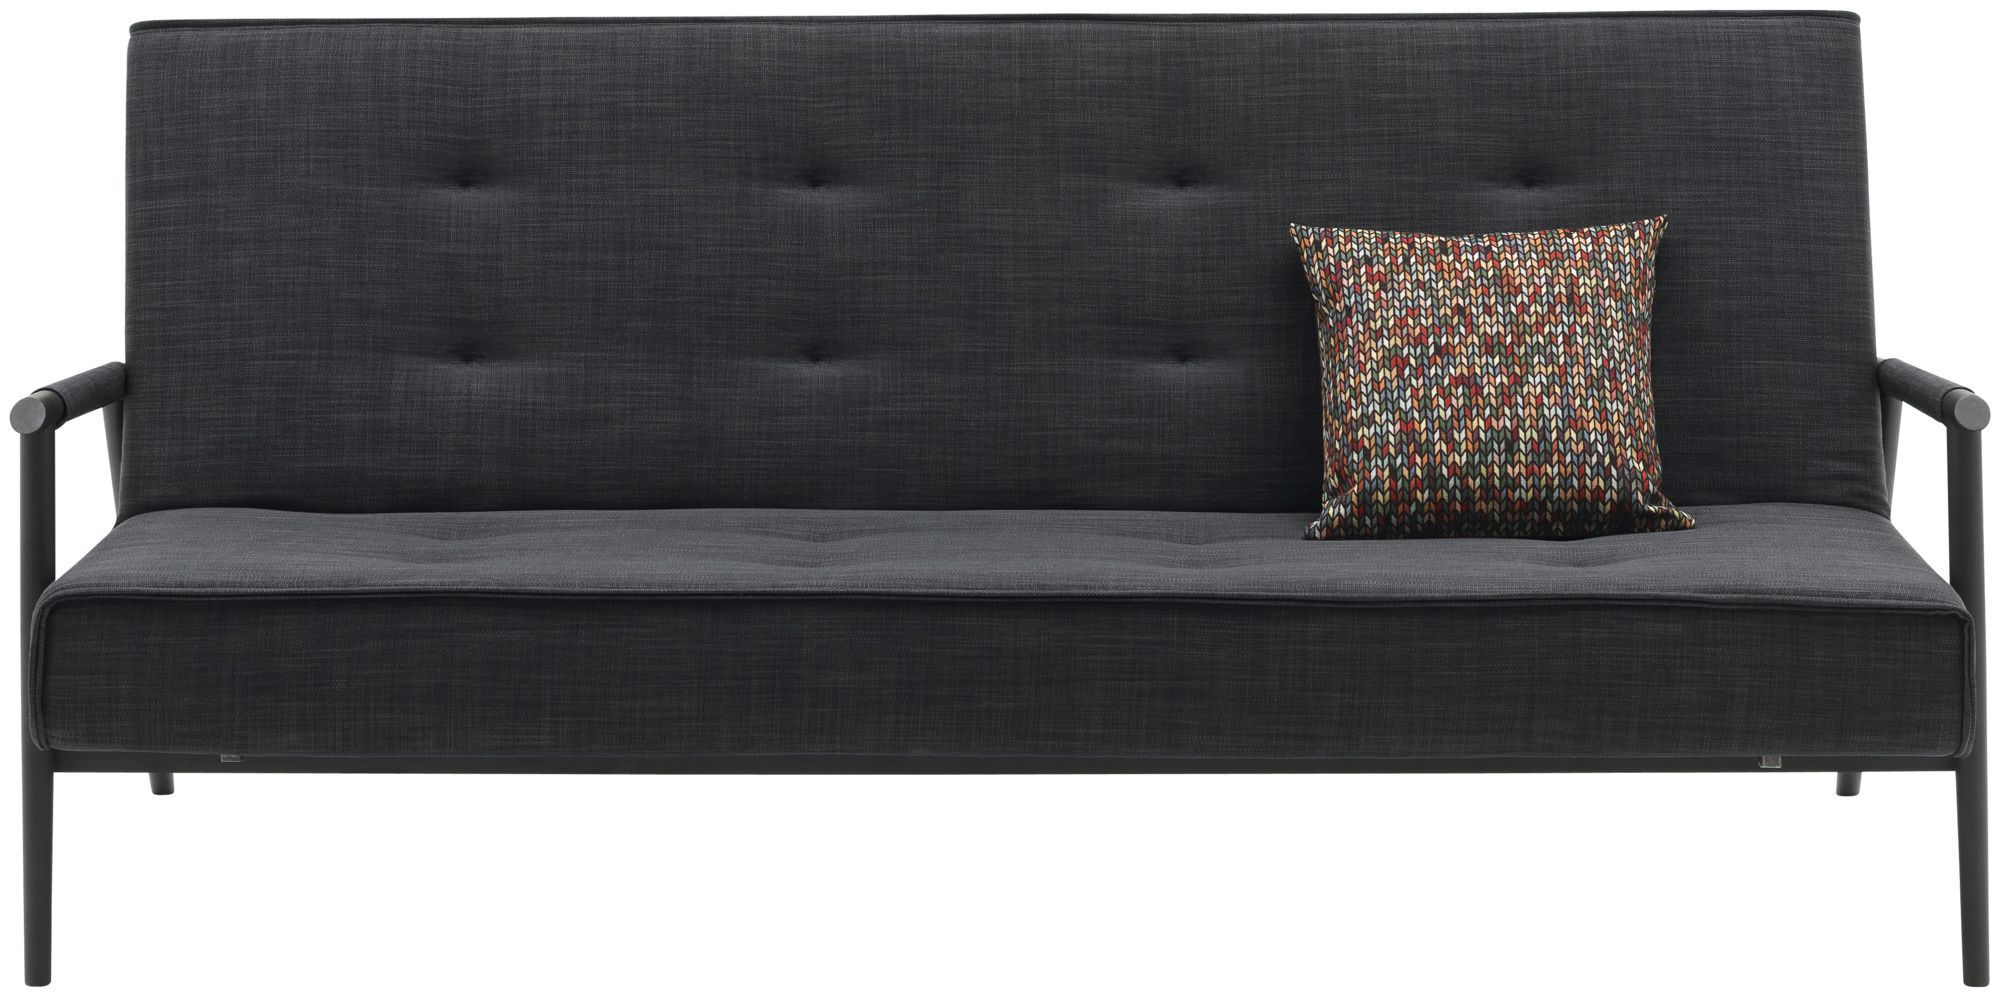 Sofa bed contemporary fabric 3seater KYOTO BoConcept